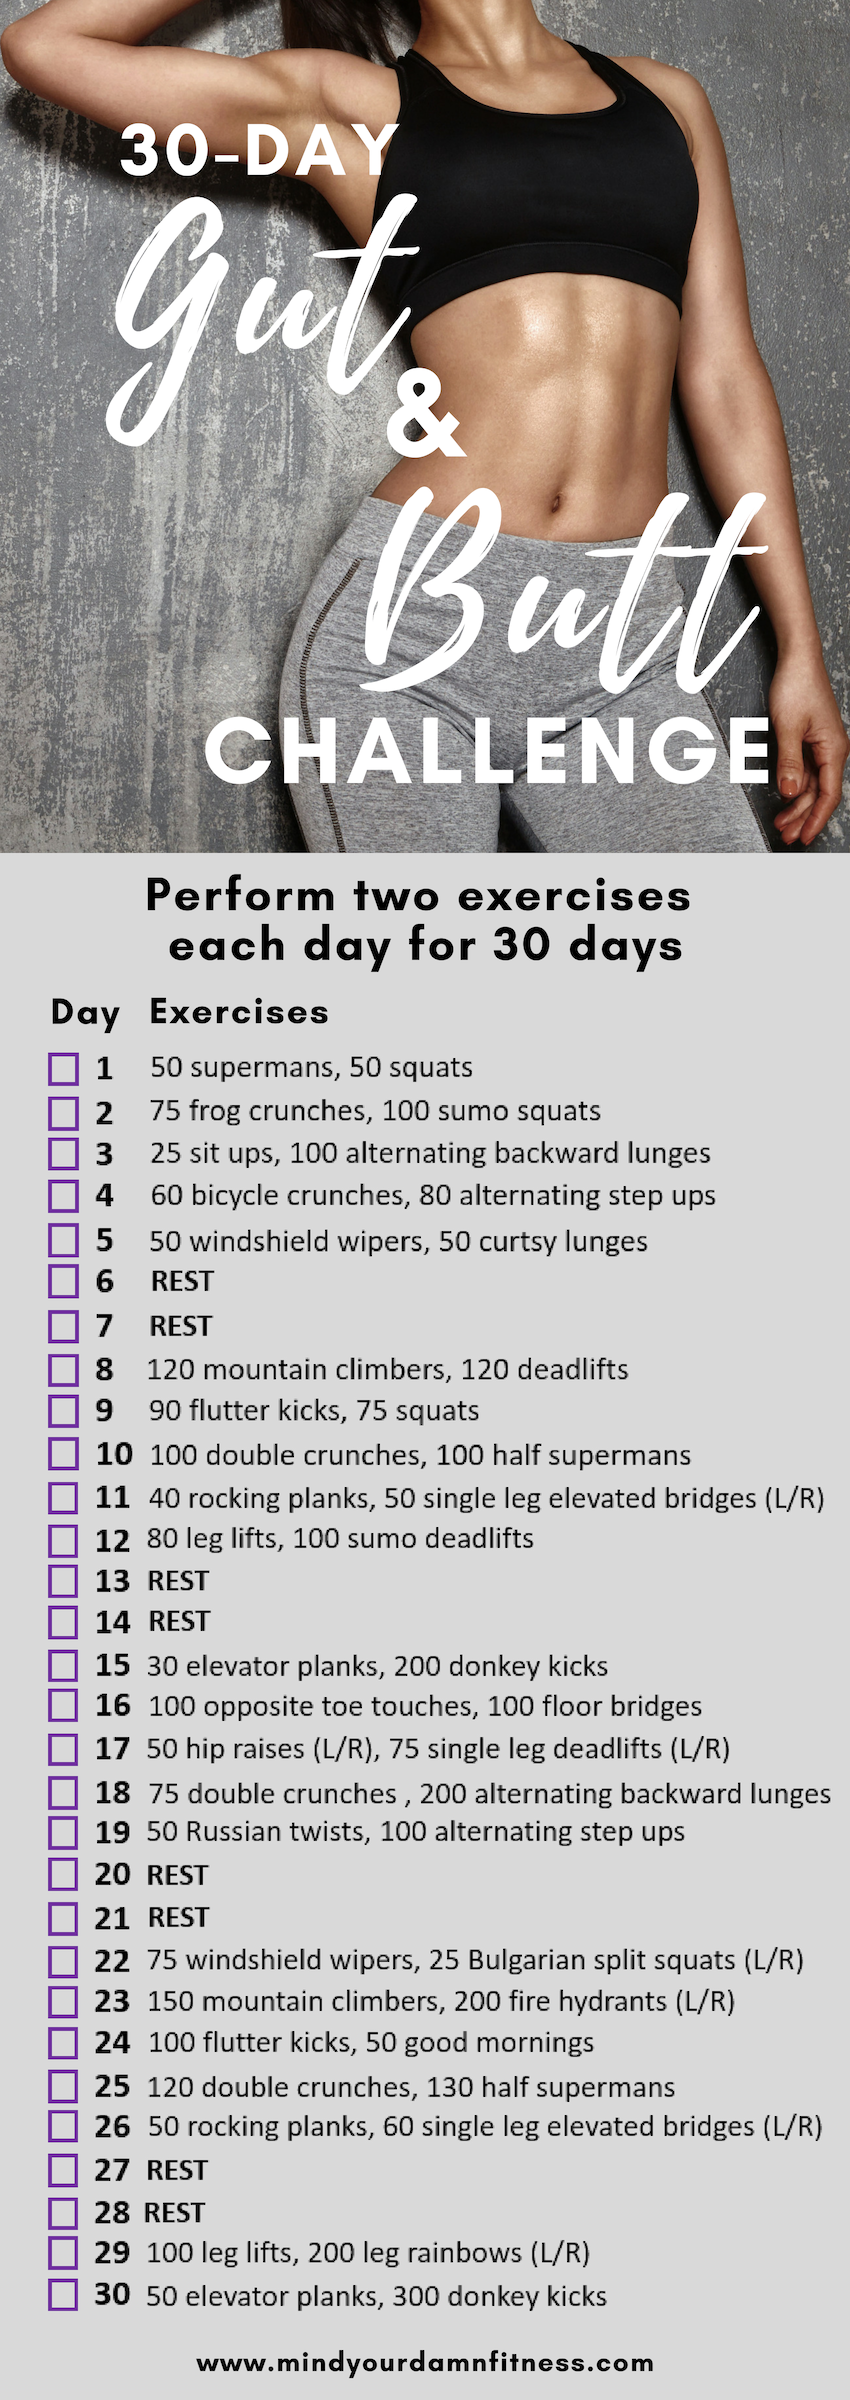 The Ultimate 30-Day Gut and Butt Challenge #fitnesschallenges